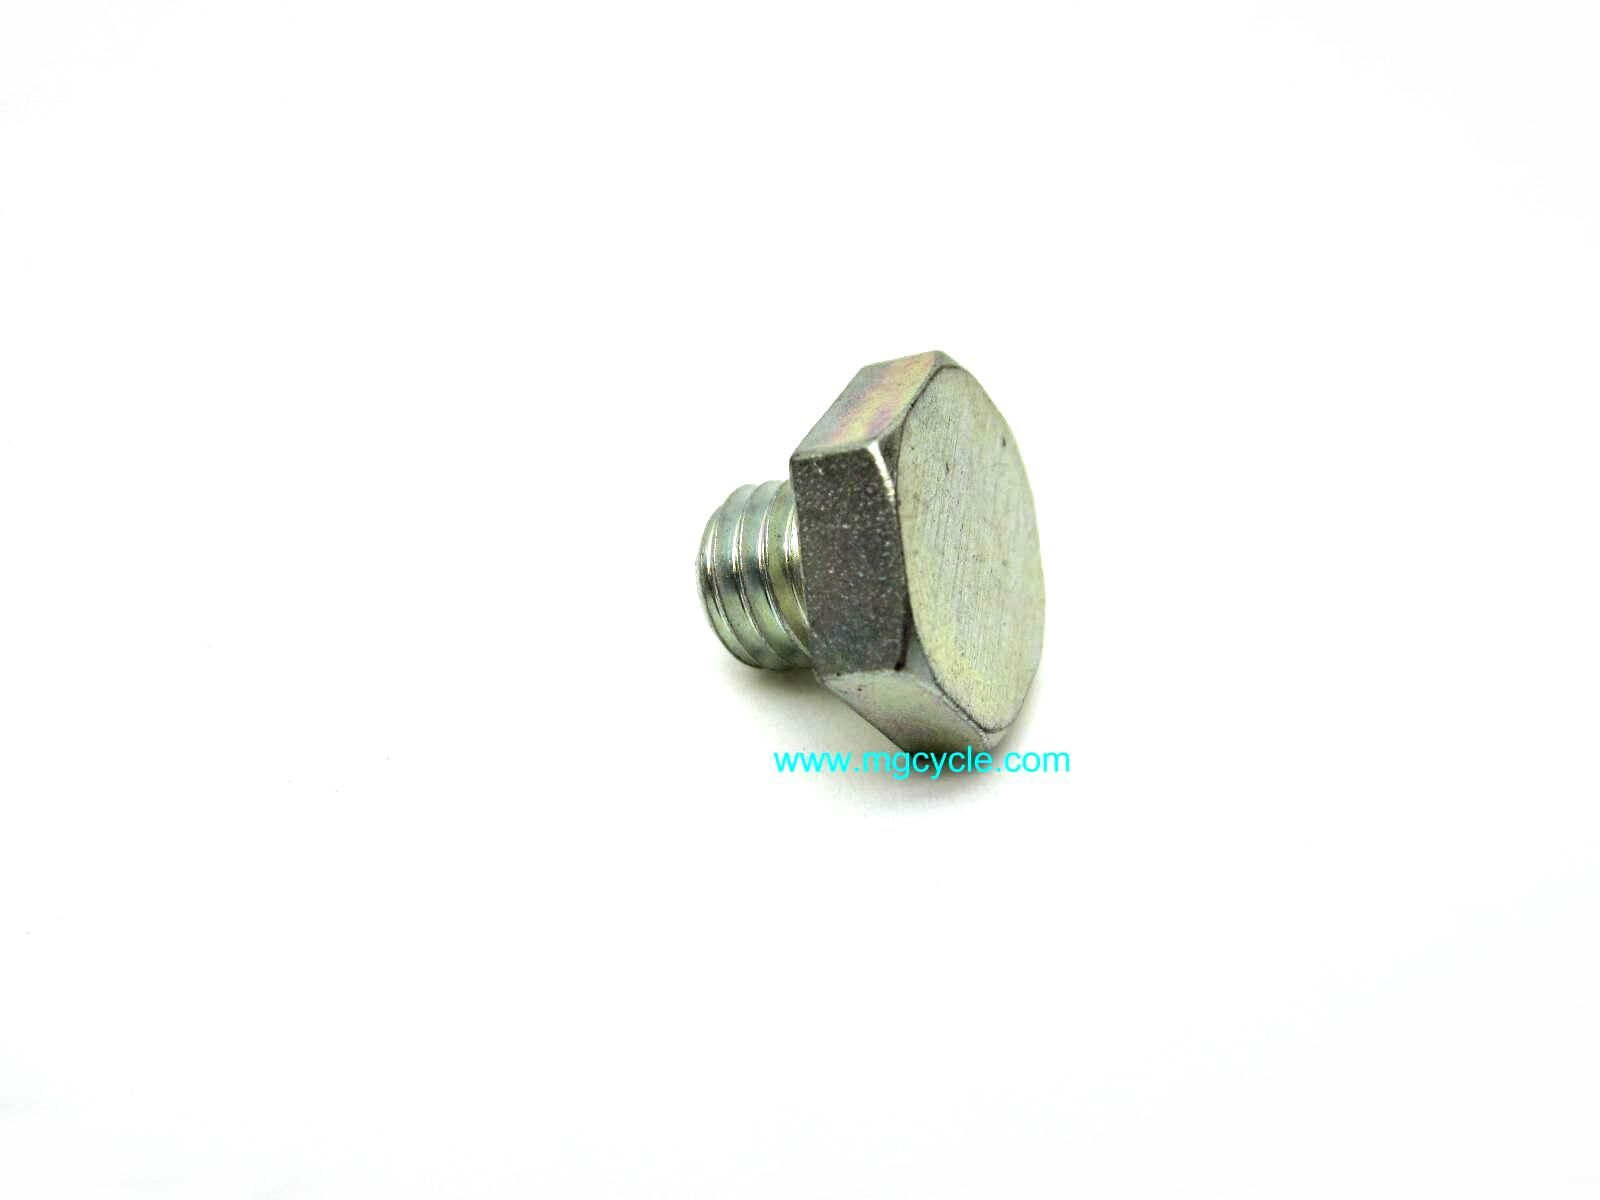 Drain plug, 10mm, transmission, final drive, engine,